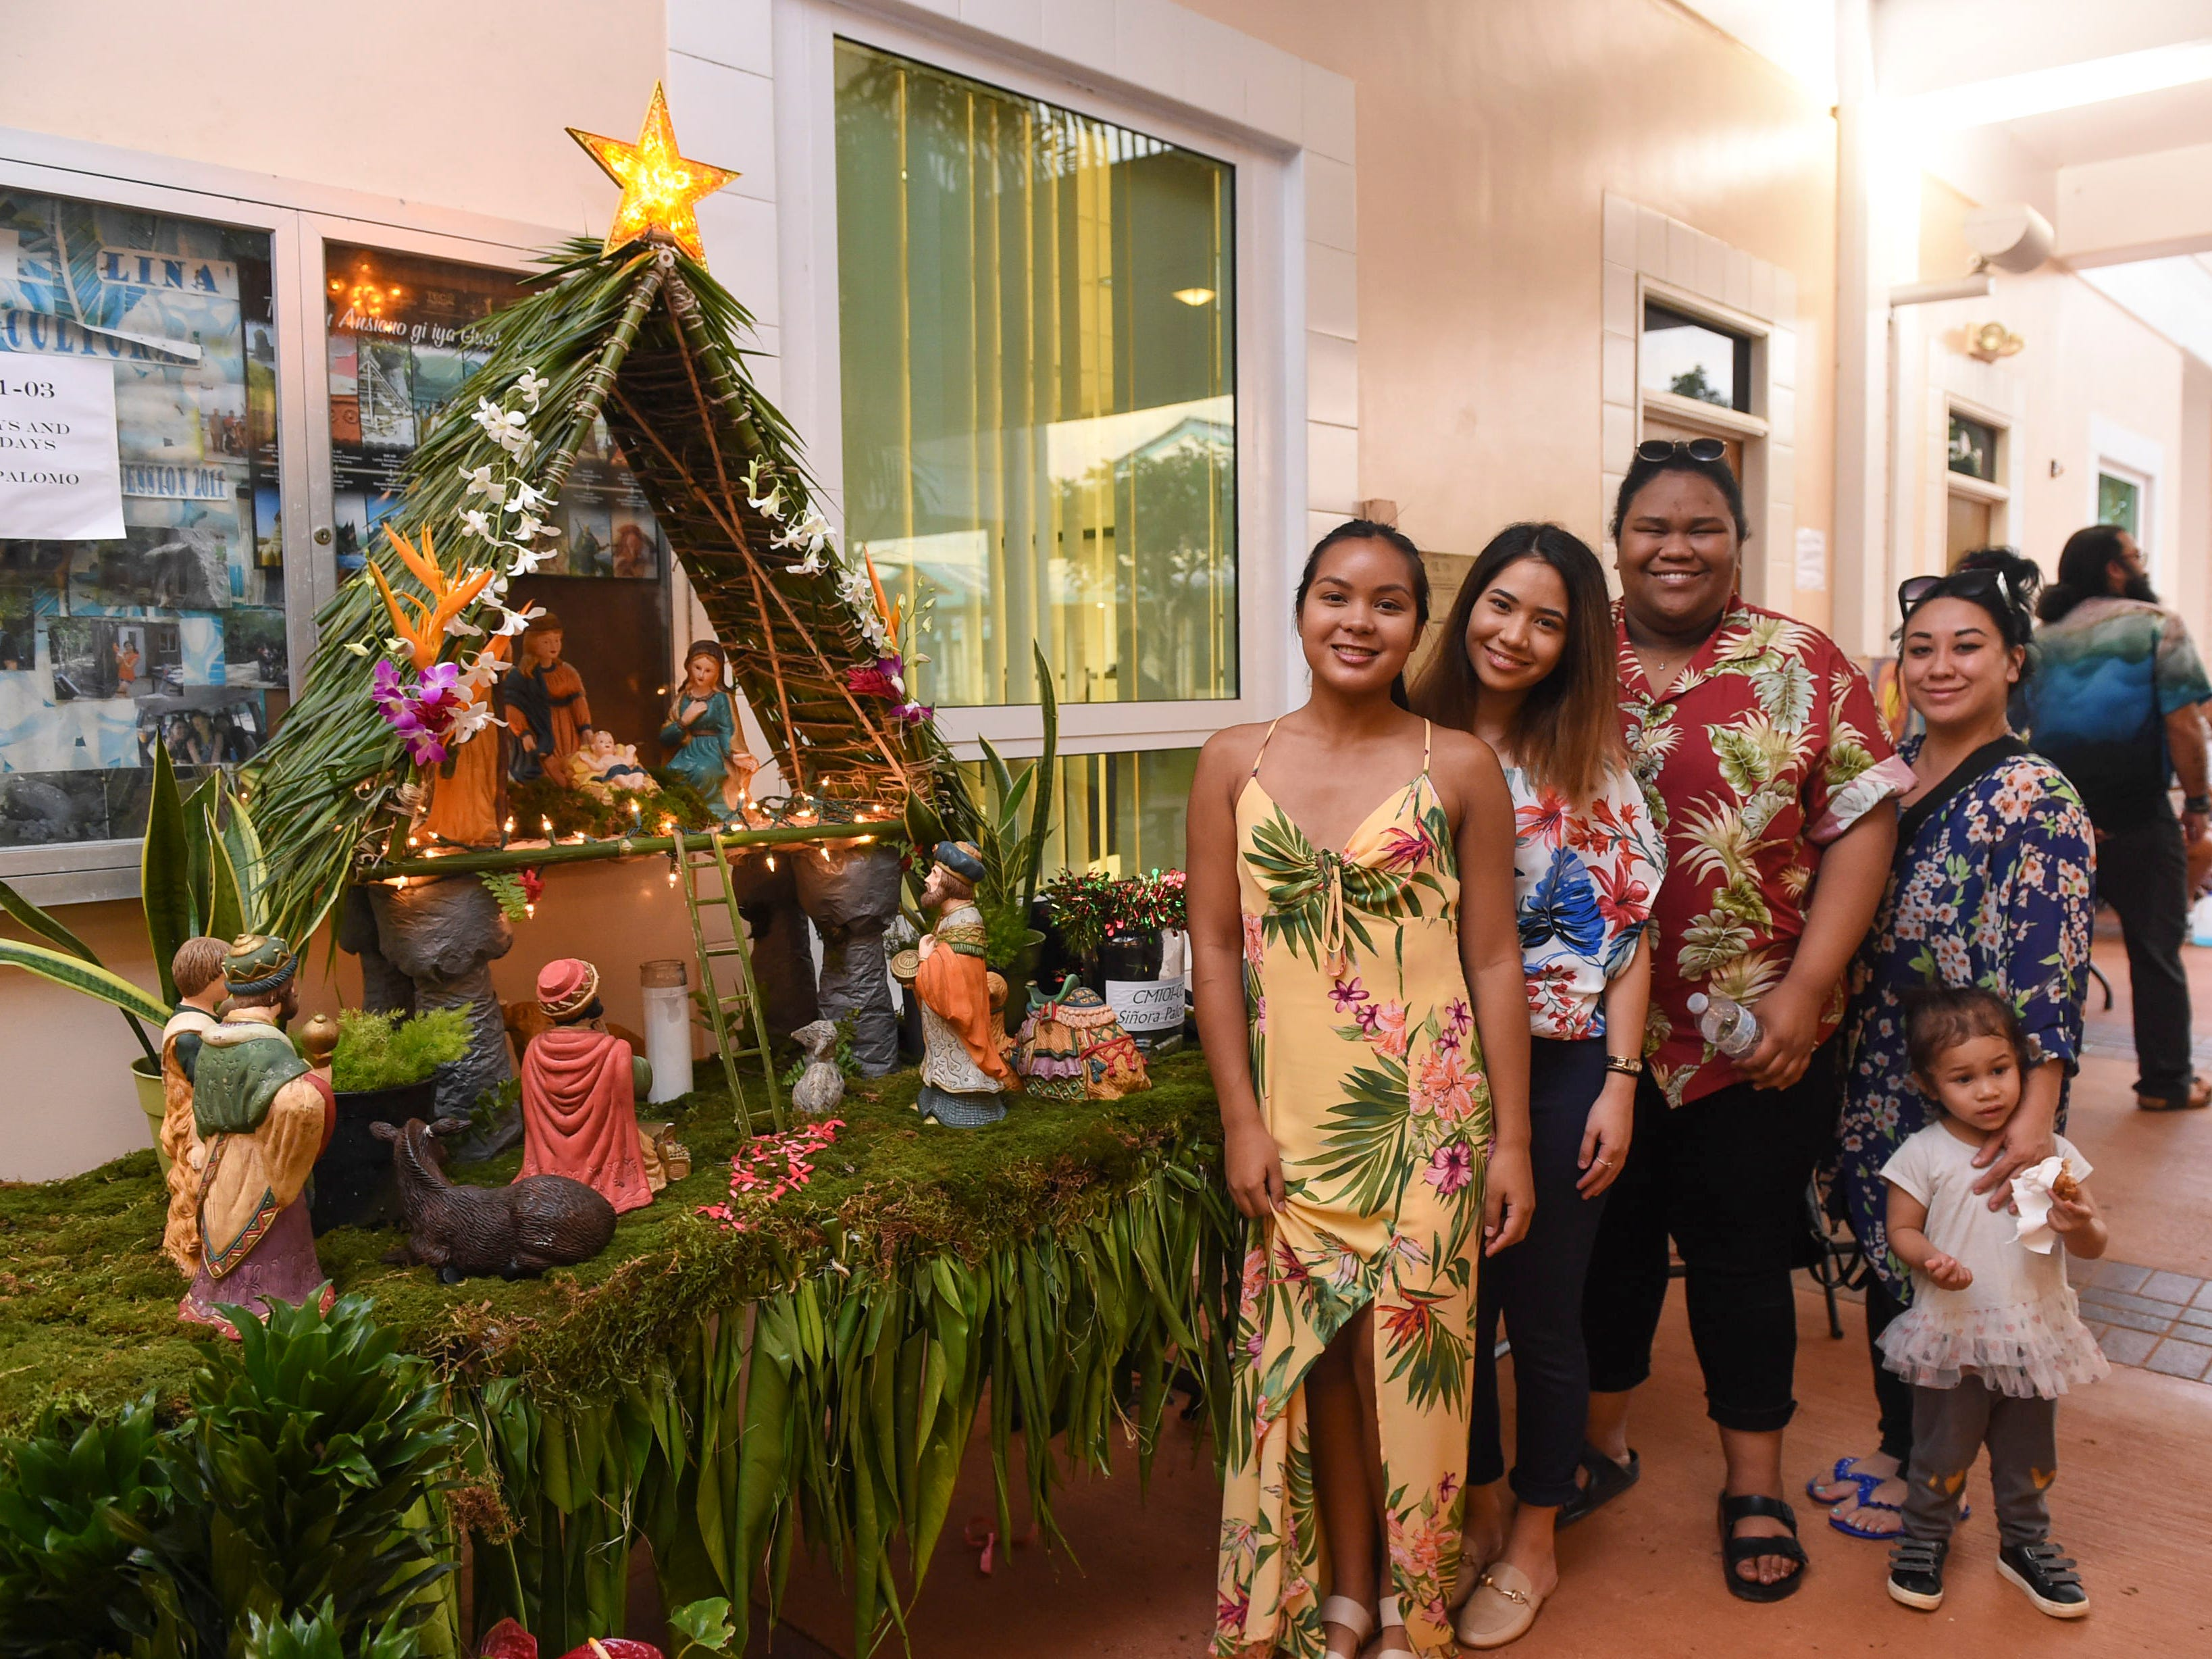 CHamoru language class students and their families stand beside their bilen during the University of Guam Chamorro Studies Program's 2018 Christmas Celebration, Puengen Minagof Noche Buena! at the UOG Humanities and Social Sciences Building on Nov. 30, 2018. From left: Aleiah Chargualaf, Cynthia Cruz, Mya Broussard, Kioni Walker and Chloe Walker, 2.